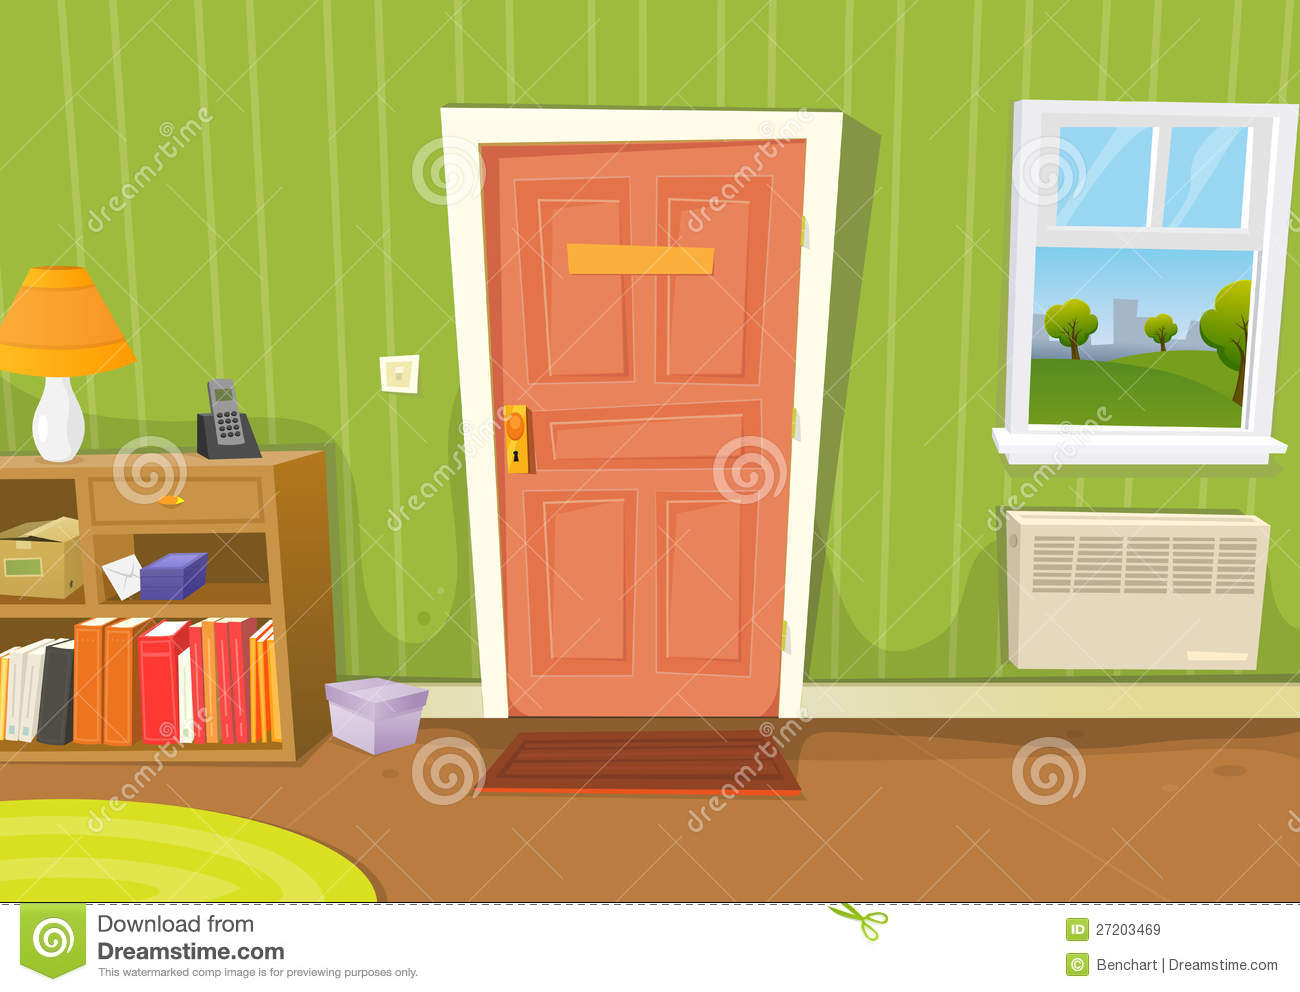 Illustration Of A Cartoon Home Interior With Living Room Door Entrance